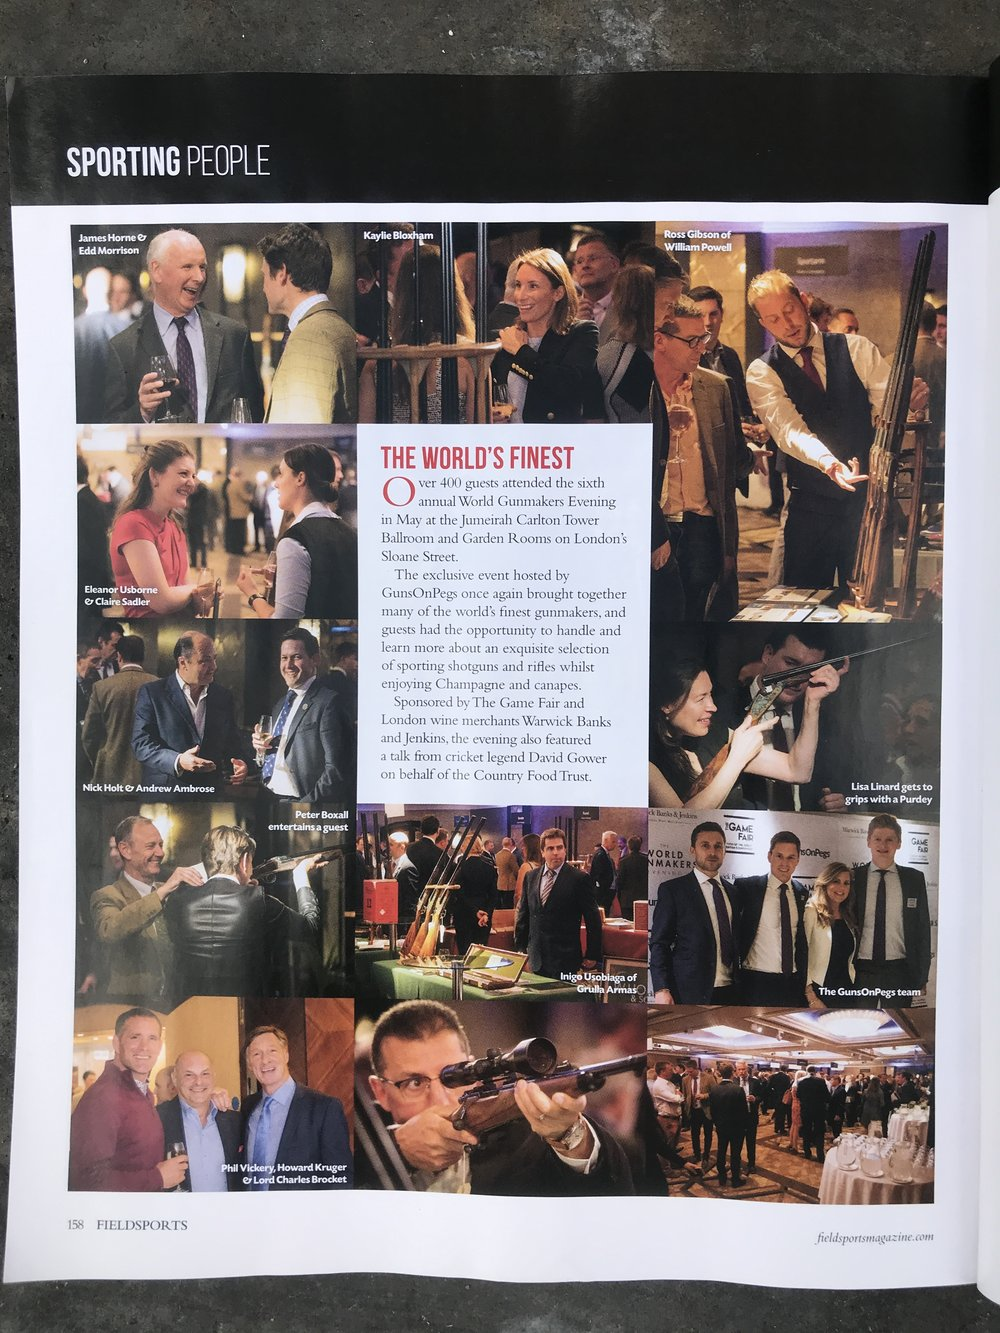 Full page spread of some of the best photographs from the event.